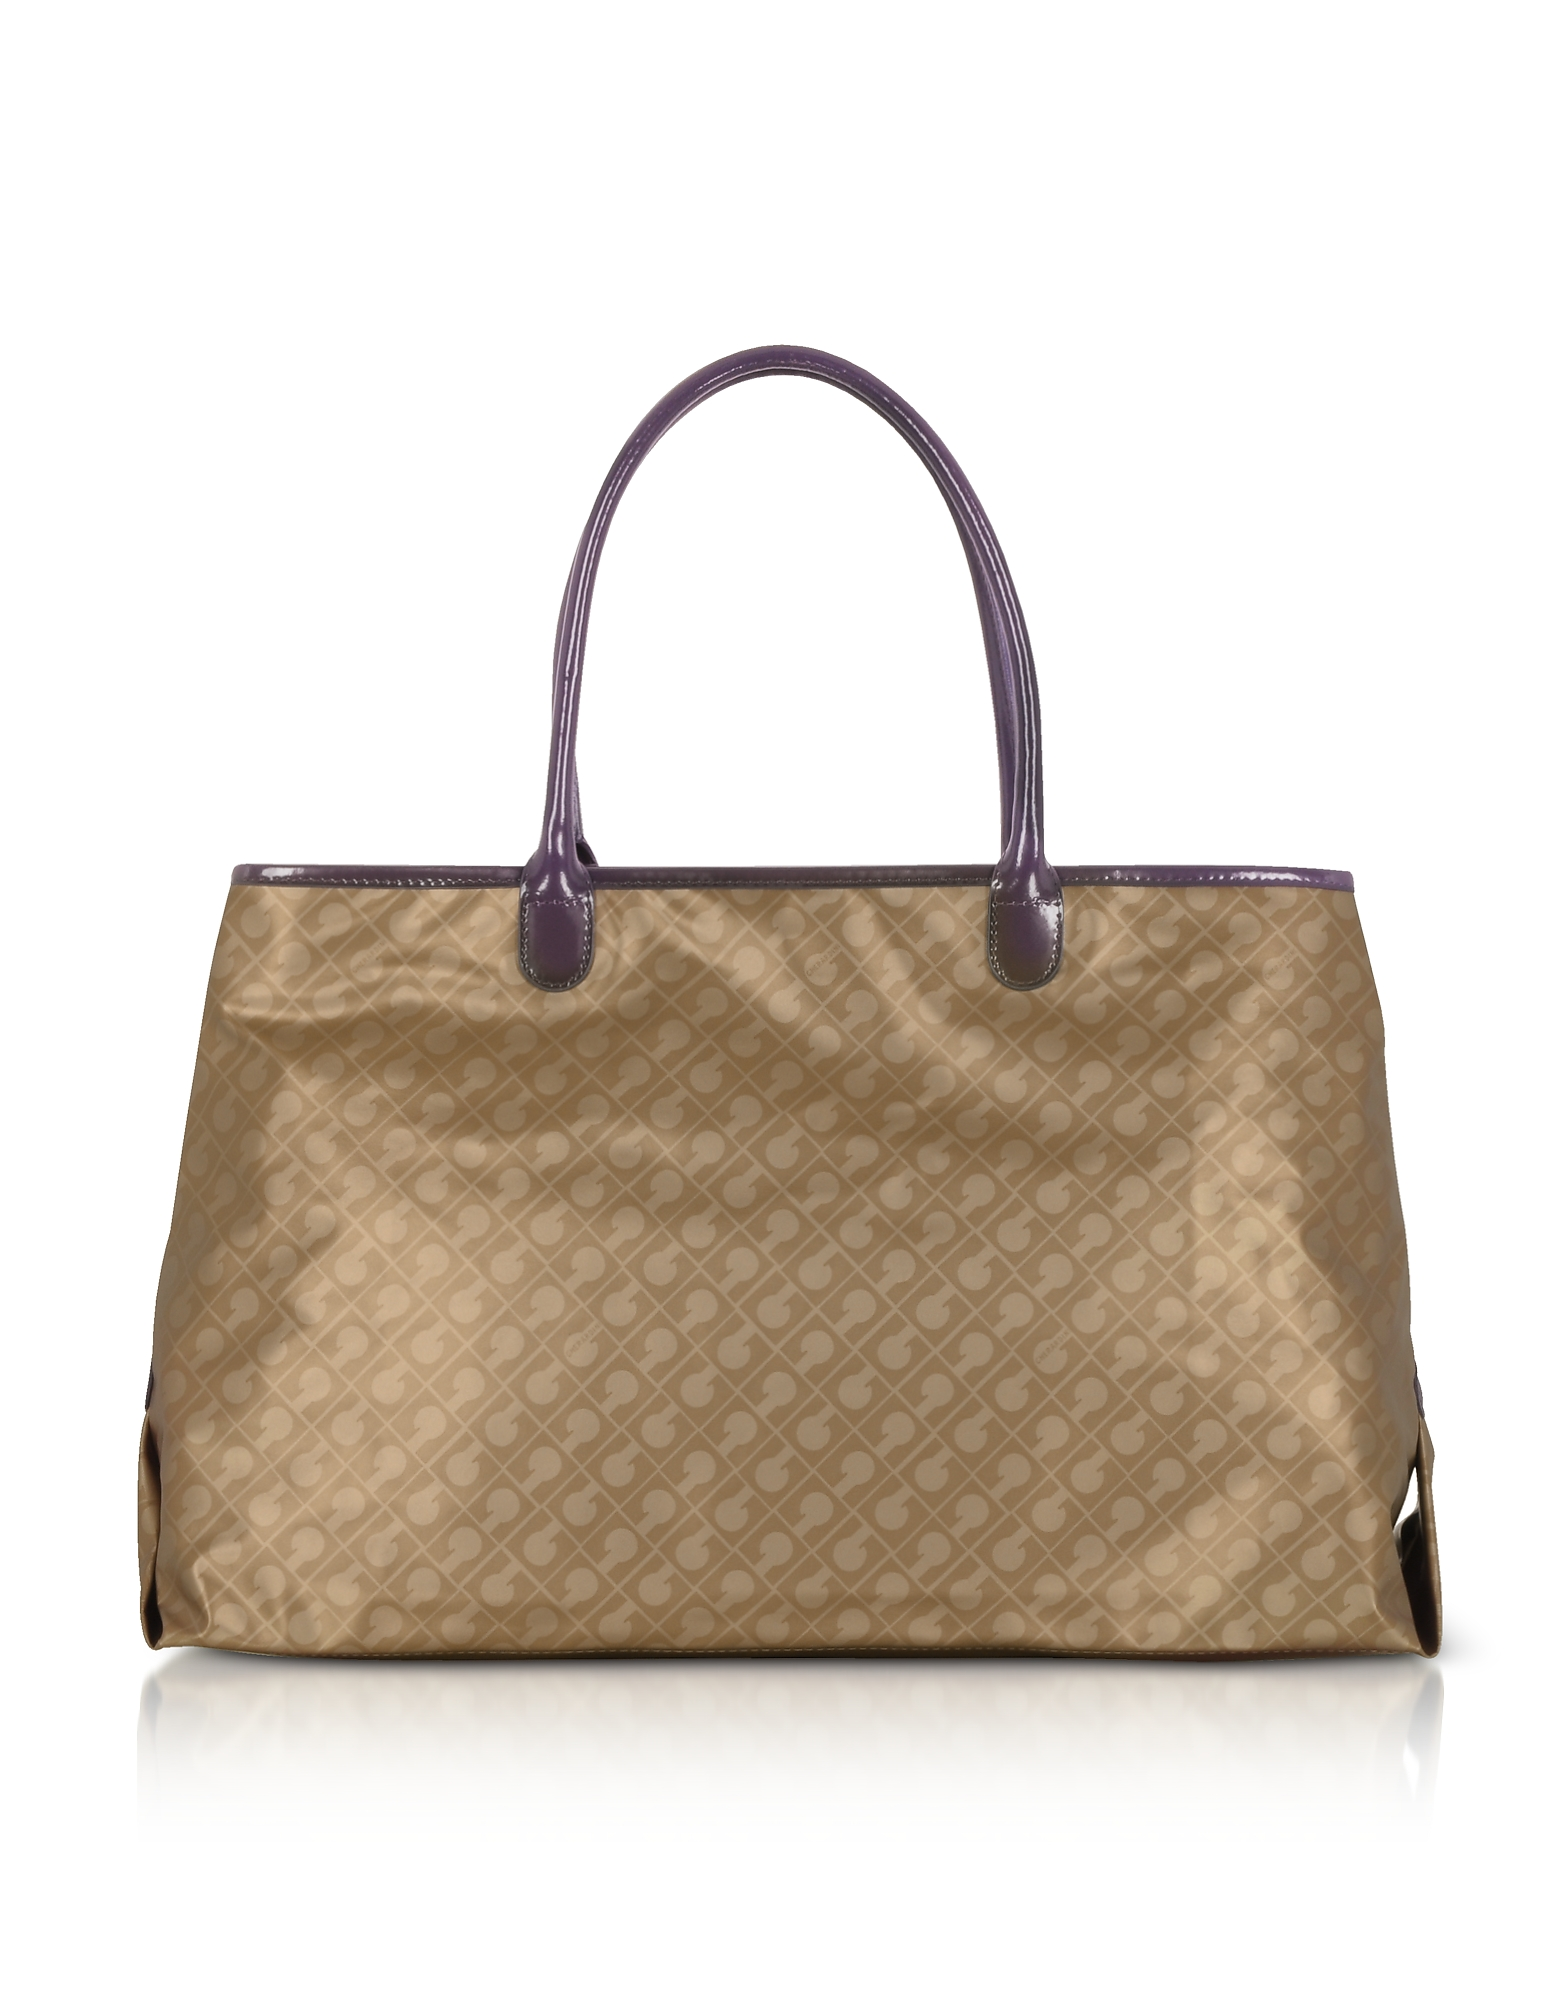 Image of Gherardini Designer Handbags, Hazelnut Signature Fabric Softy Tote w/Patent Leather Double Handles